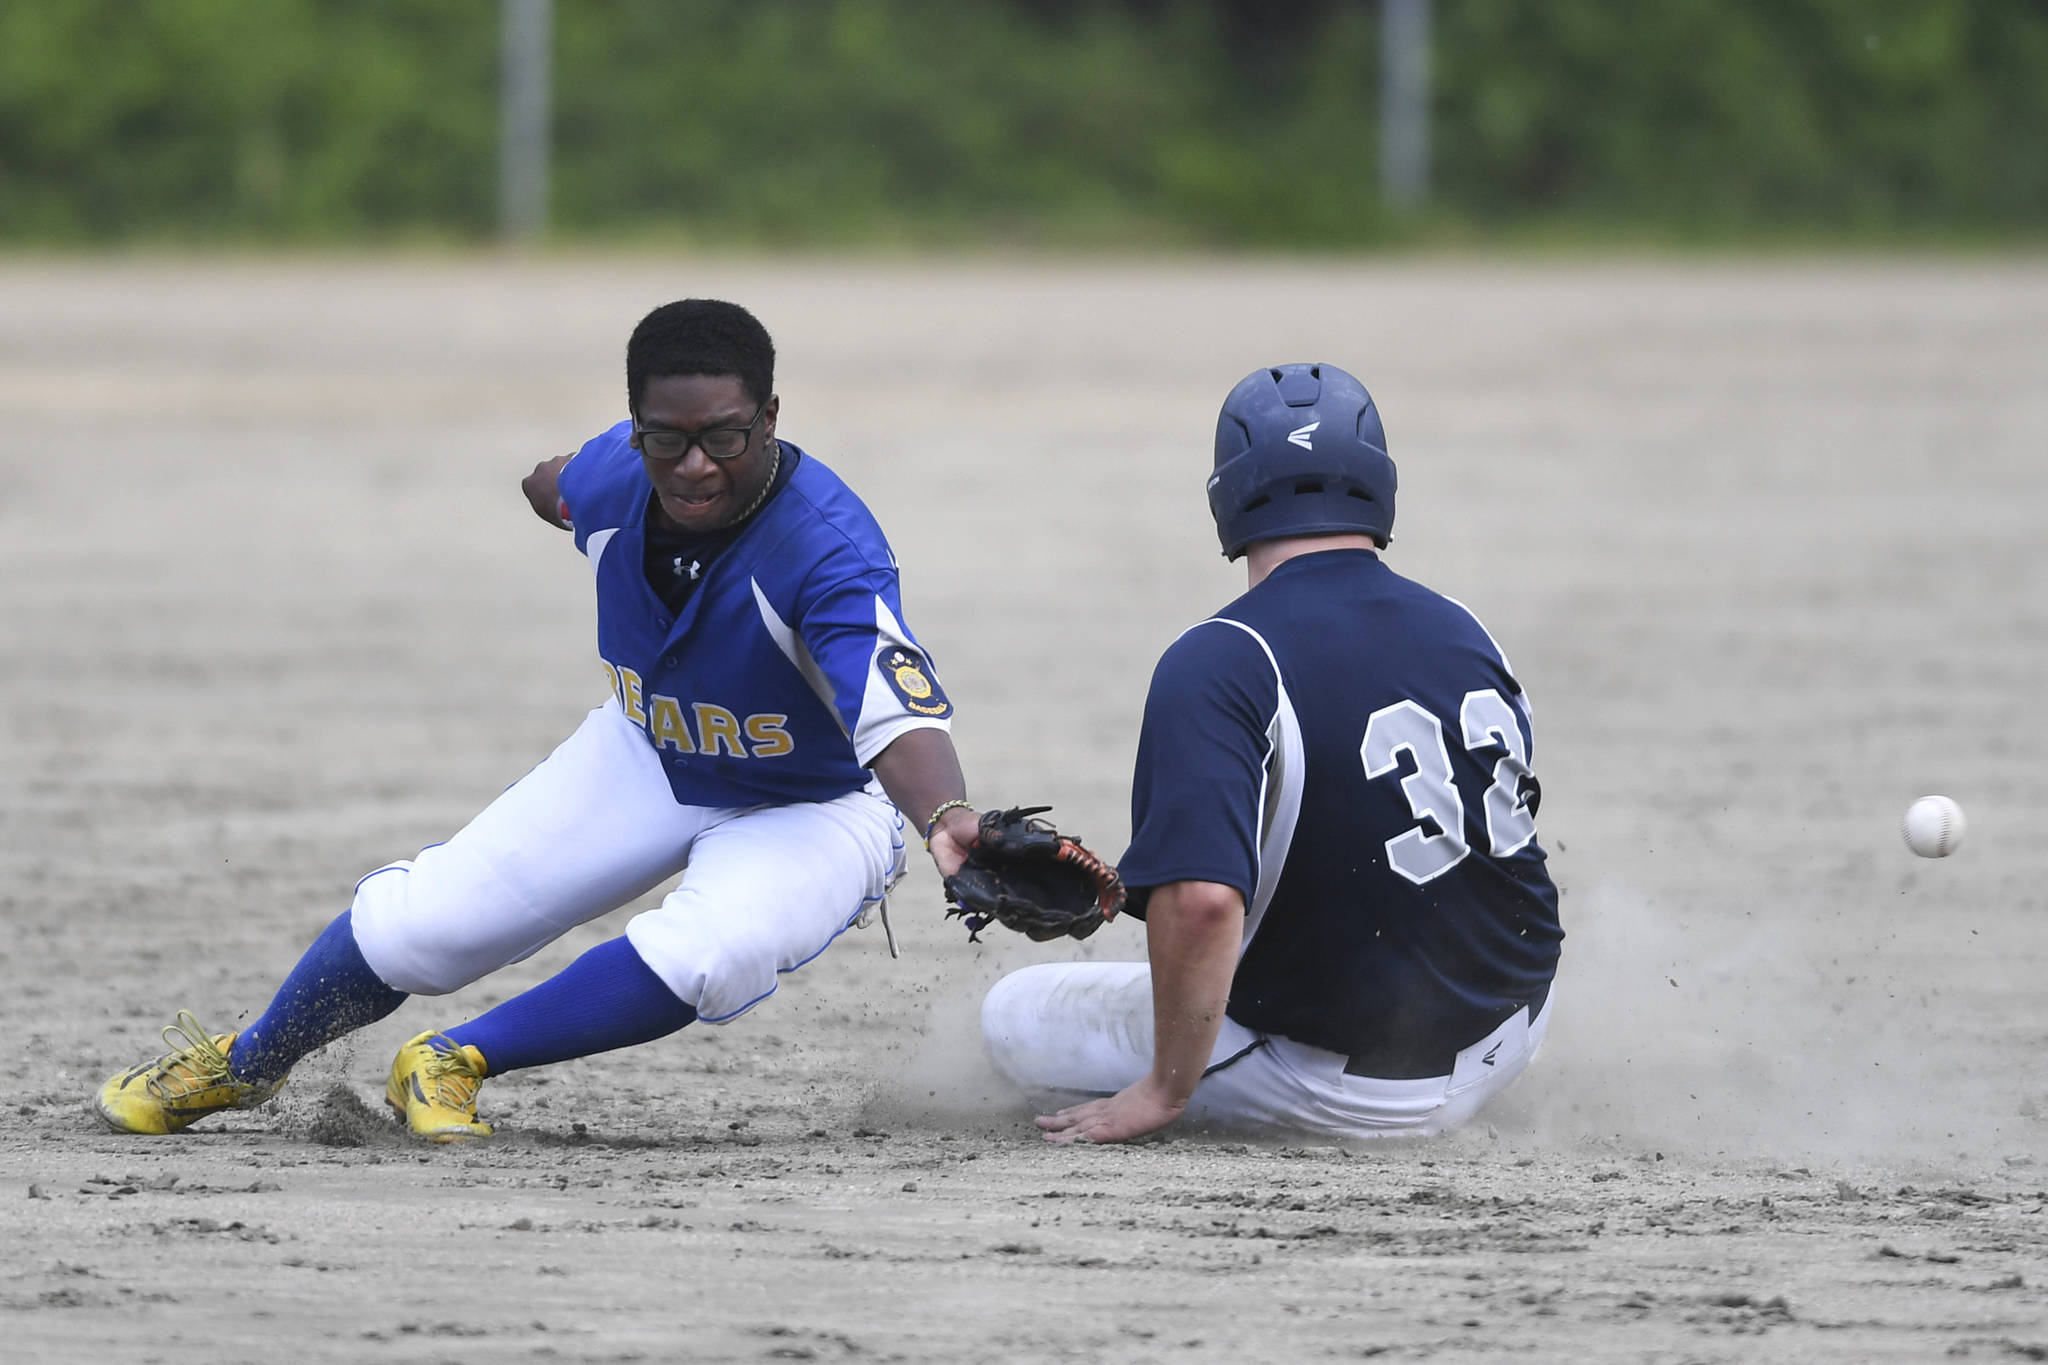 Juneau's Robert Cox, right, steal second against Bartlett's Ian Byrd in the fourth inning in Legion League baseball at Adair-Kennedy Memorial Park on Friday, June 21, 2019. (Michael Penn | Juneau Empire)